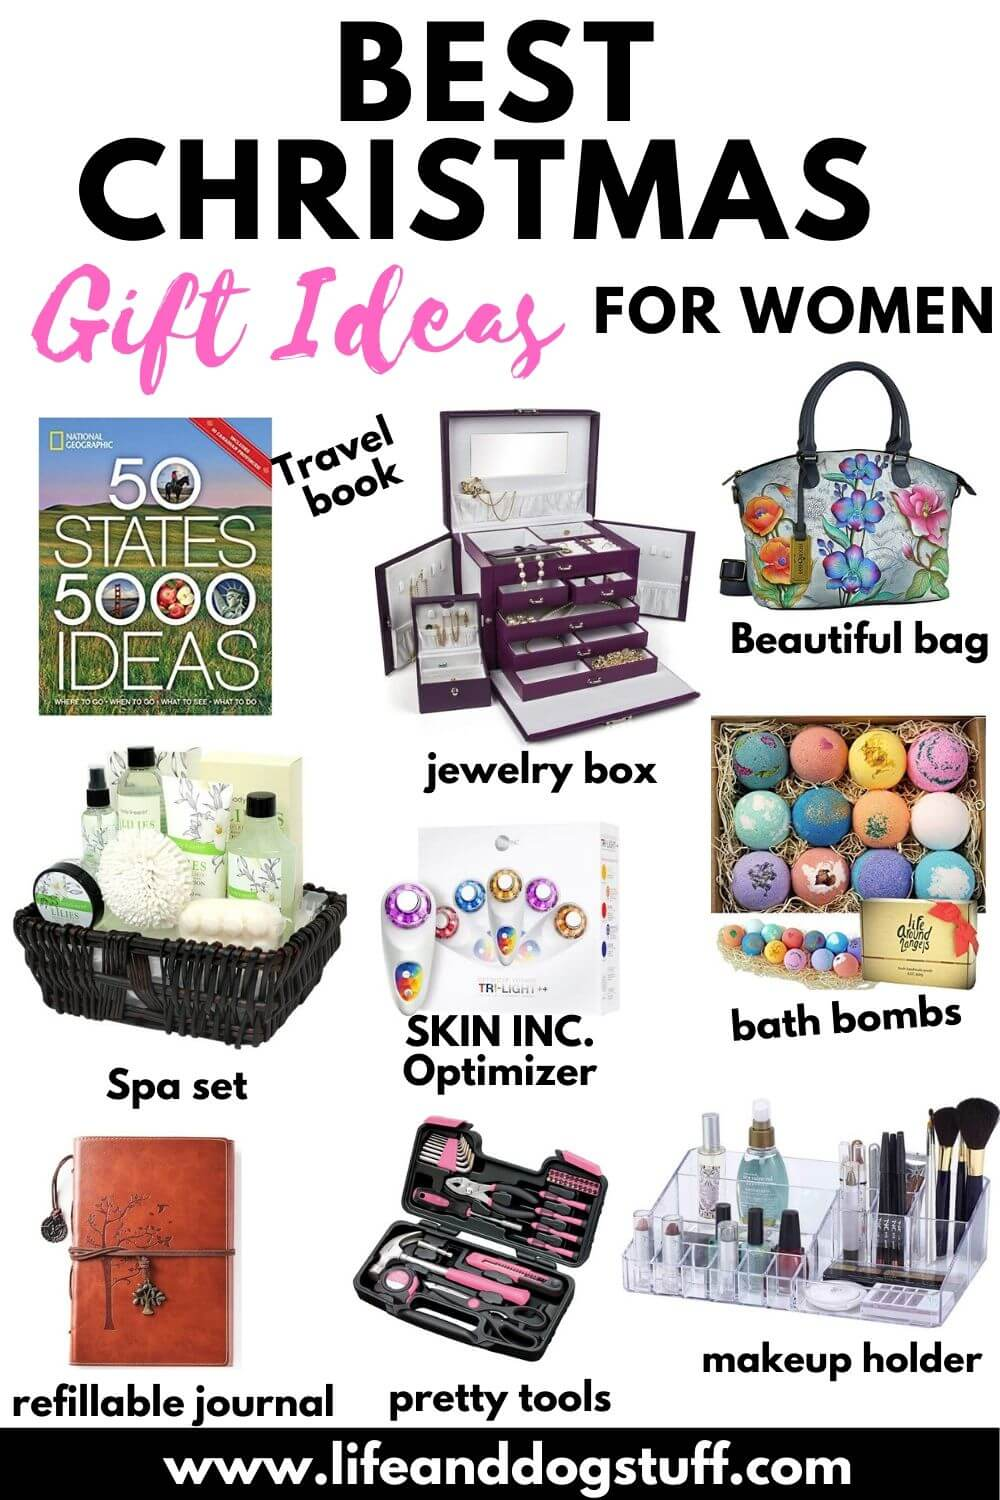 20 Best Christmas Gift Ideas For Women 2019